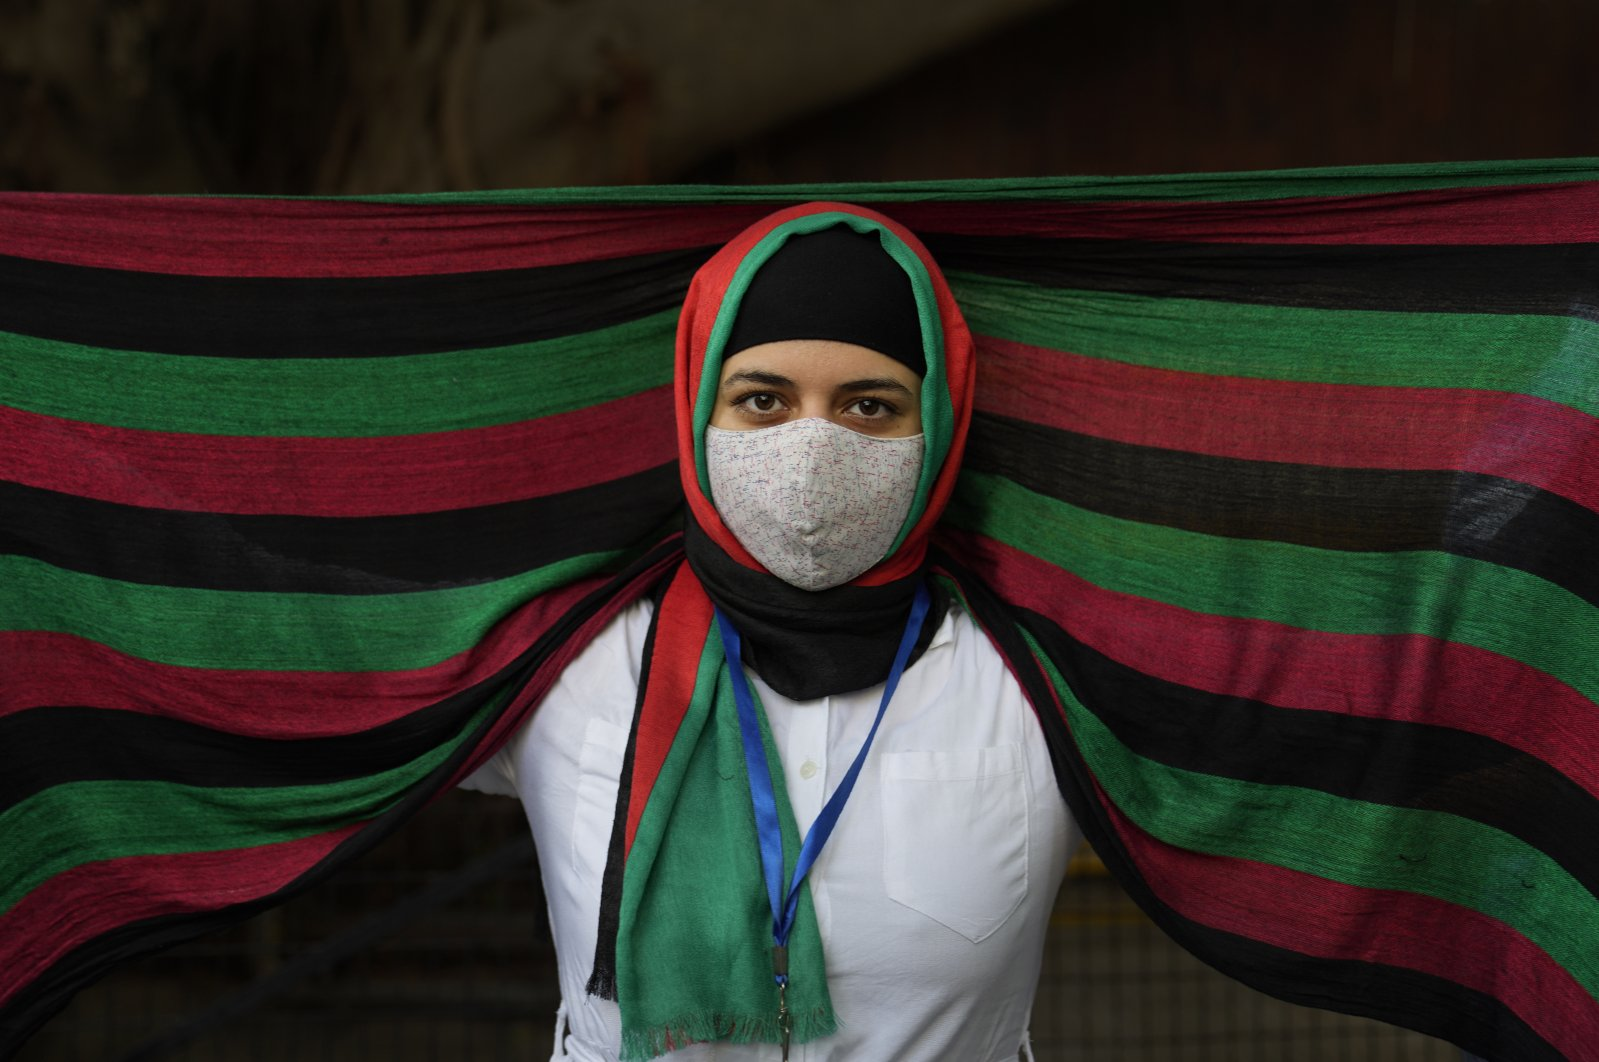 An Afghan refugee living in India wearing a scarf in the colors of the Afghan flag participates in a protest against the Taliban takeover of Afghanistan outside the office of the United Nations High Commissioner for Refugees, in New Delhi, India,  Aug. 23, 2021. (AP Photo)